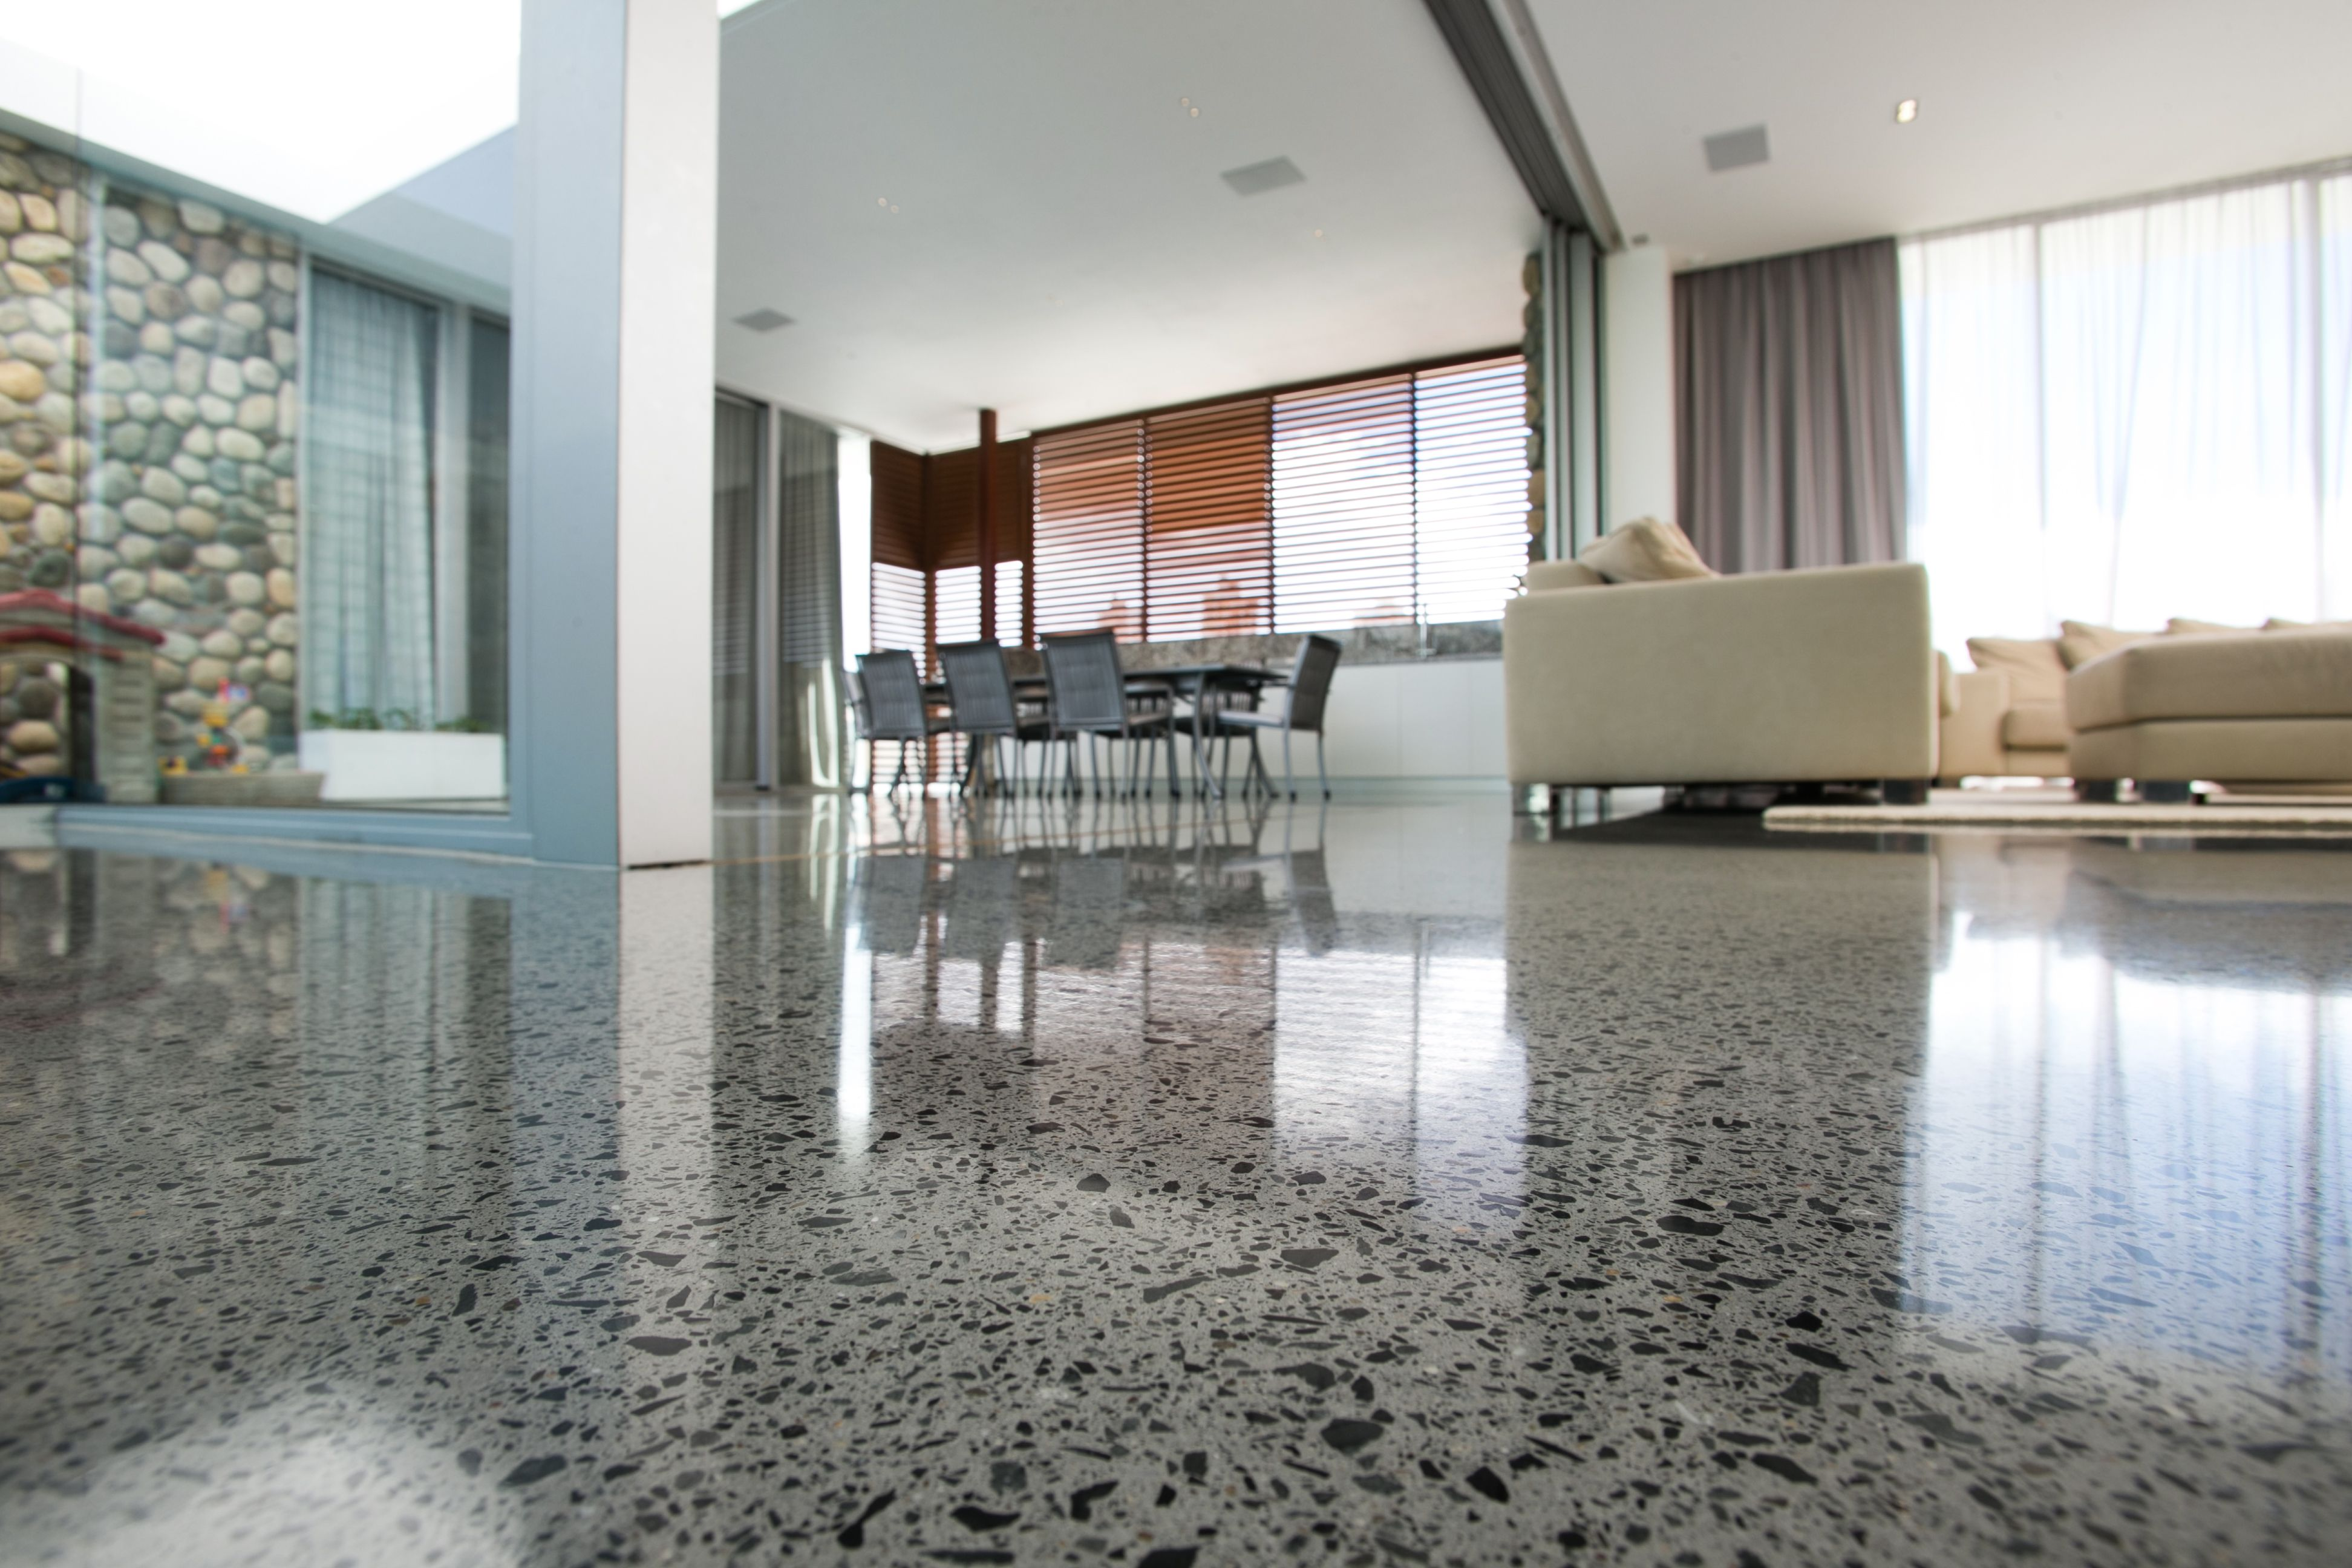 Exceptionnel Exotic Polished Concrete Floors For Your Interior Decor Ideas:  Extraordinary Polished Concrete Floors Design With Sofa And White Wall For  Contemporary ...